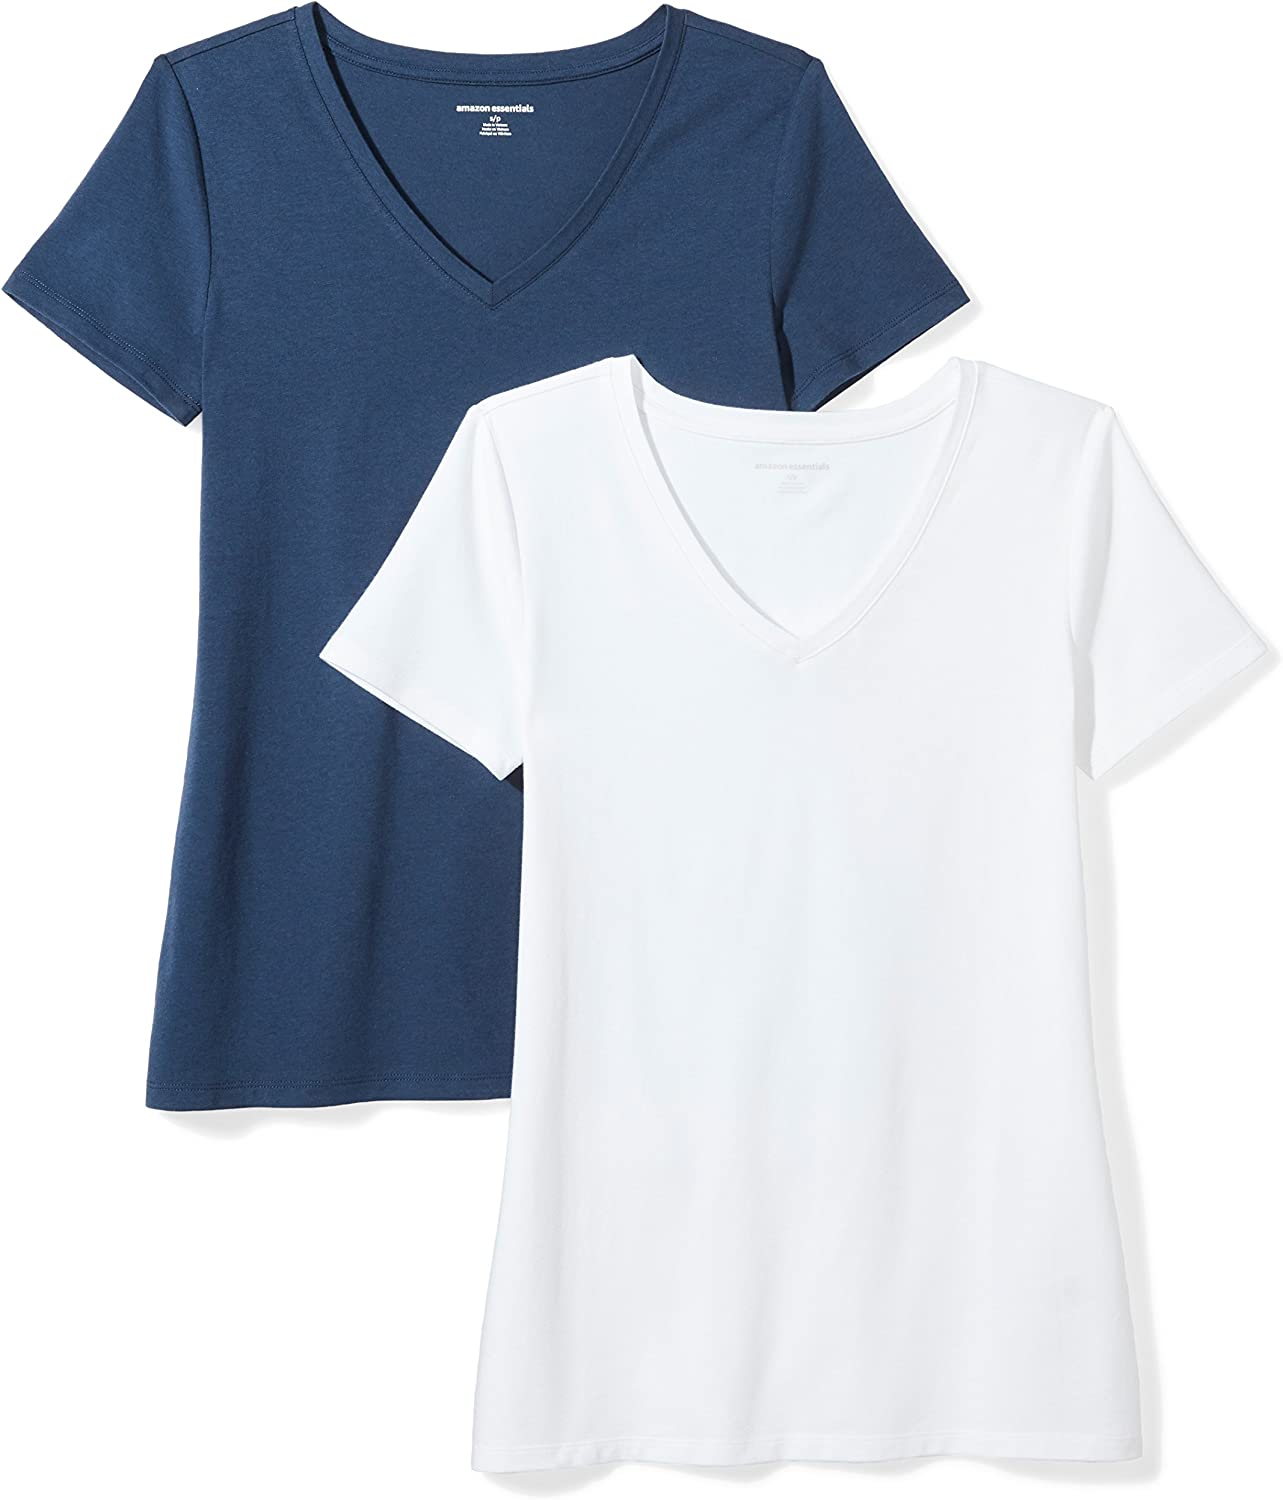 Essentials Women's 2-Pack Classic-Fit Short-Sleeve V-Neck T-Shirt: Clothing